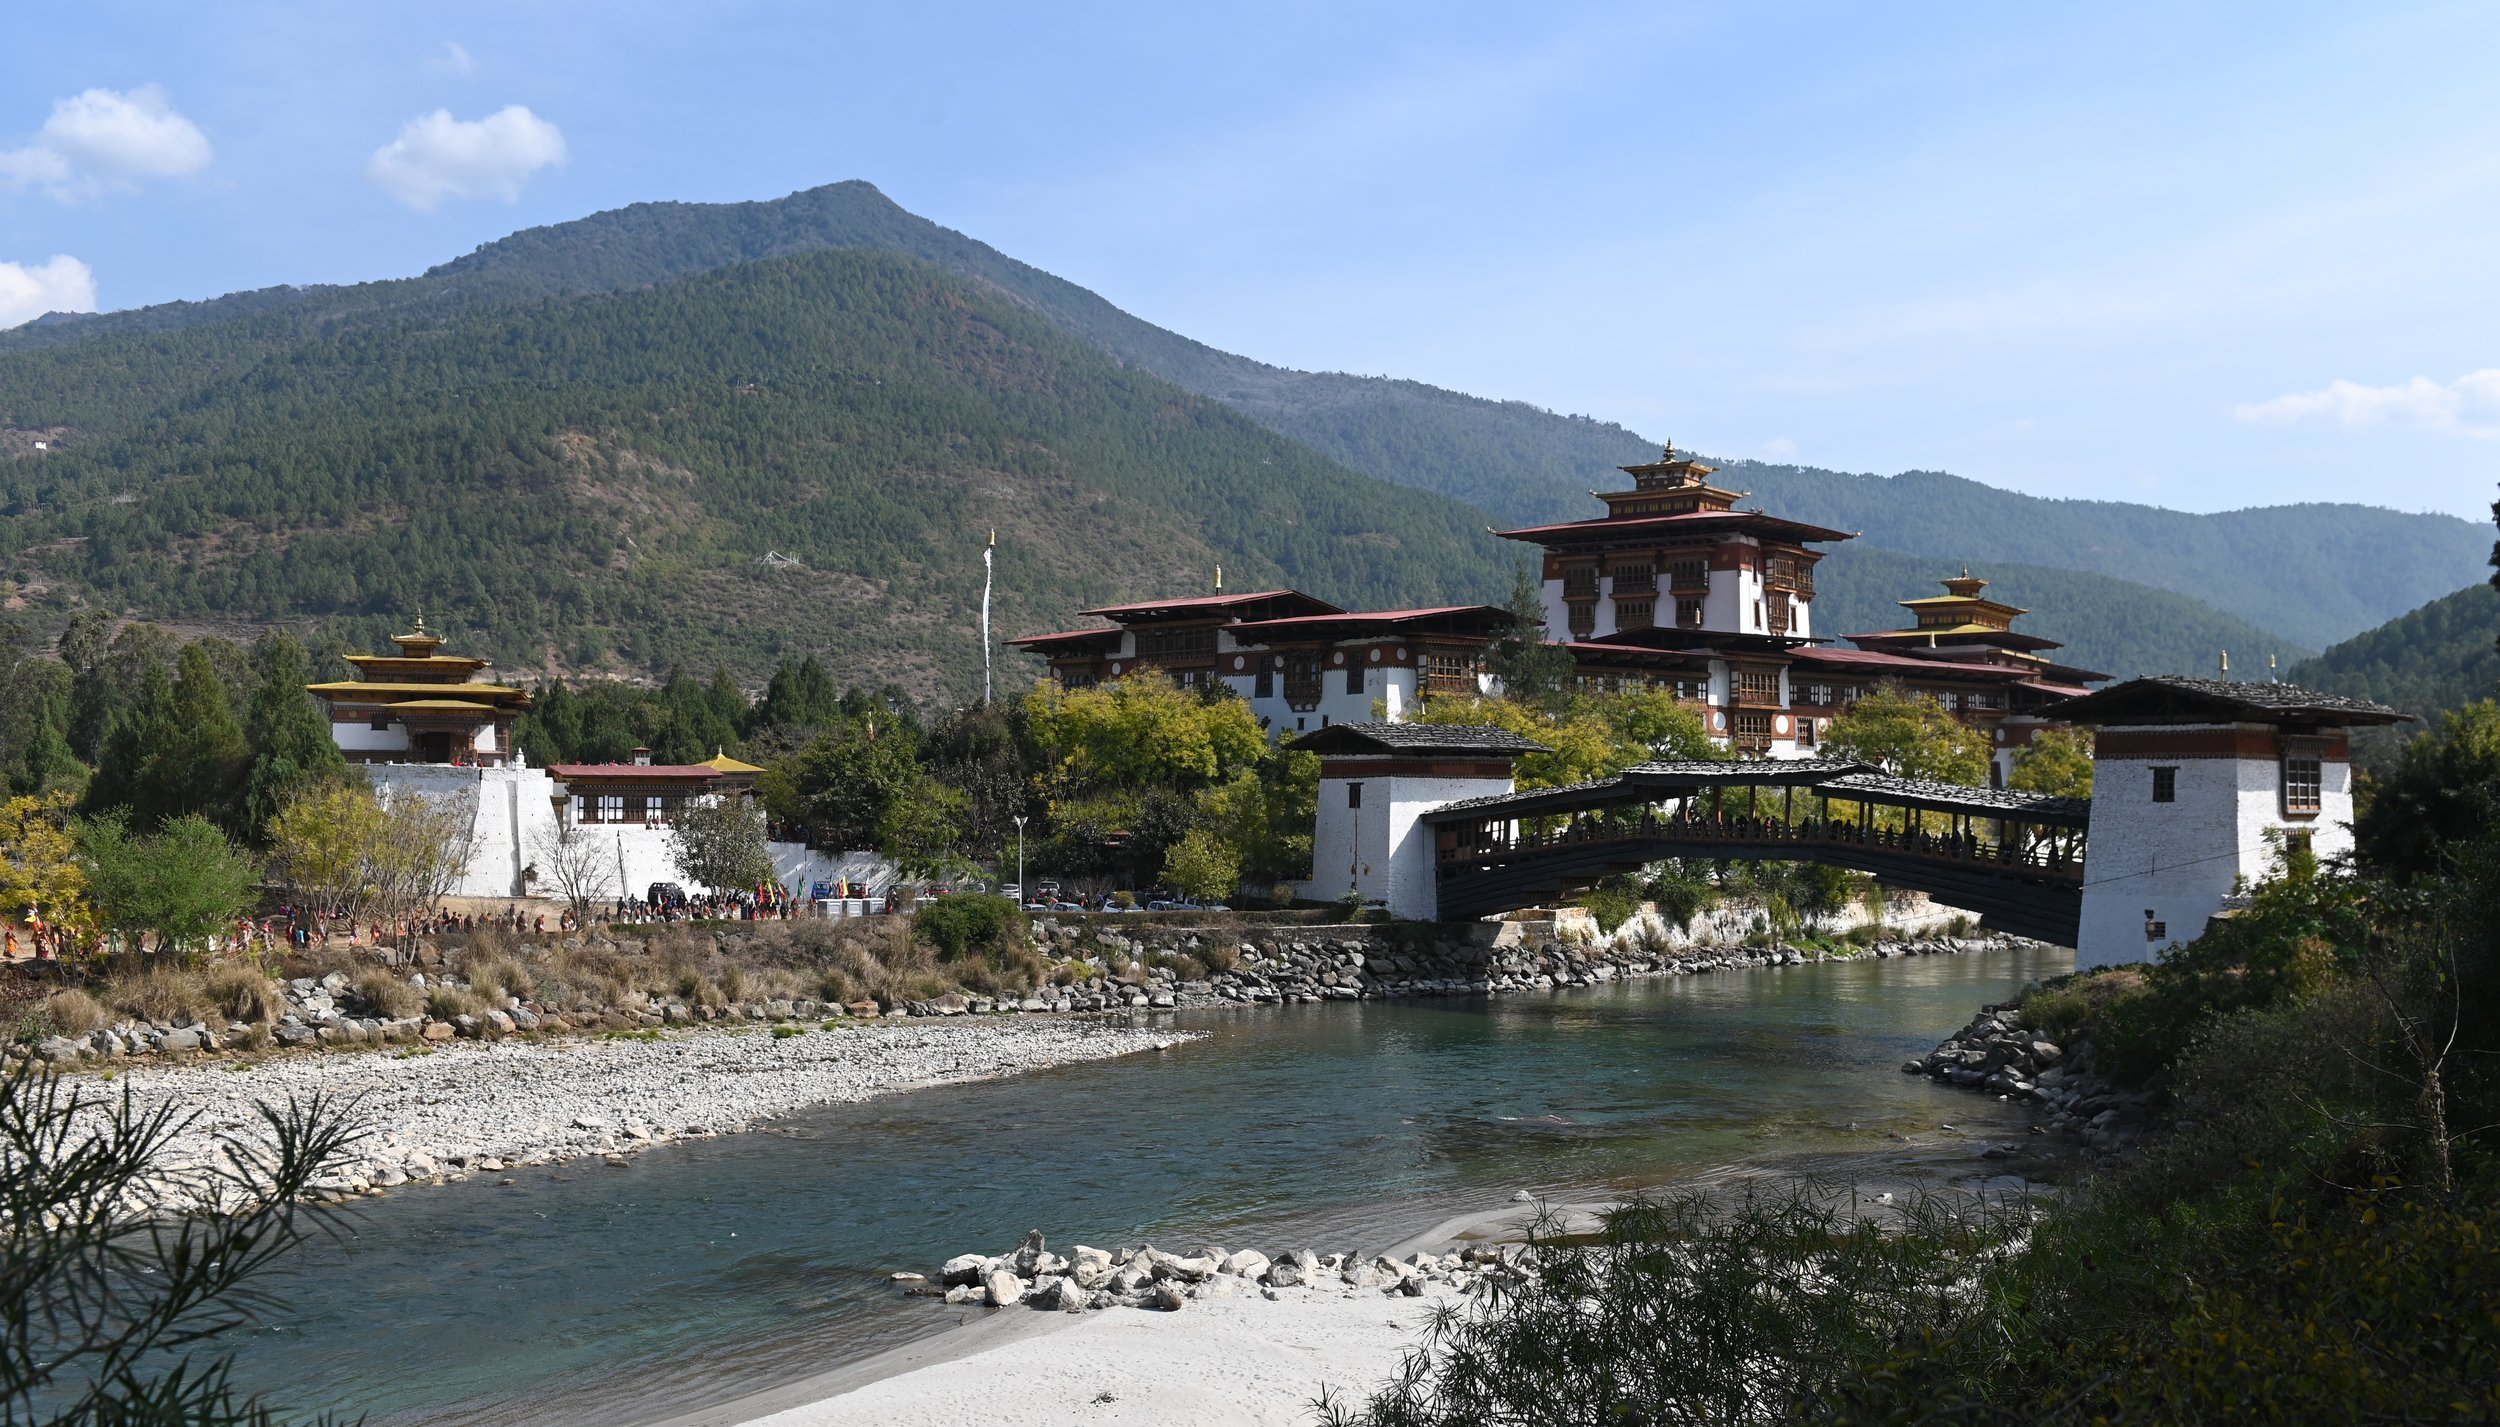 ADSC_1171dzongandbridge - Copy.jpg